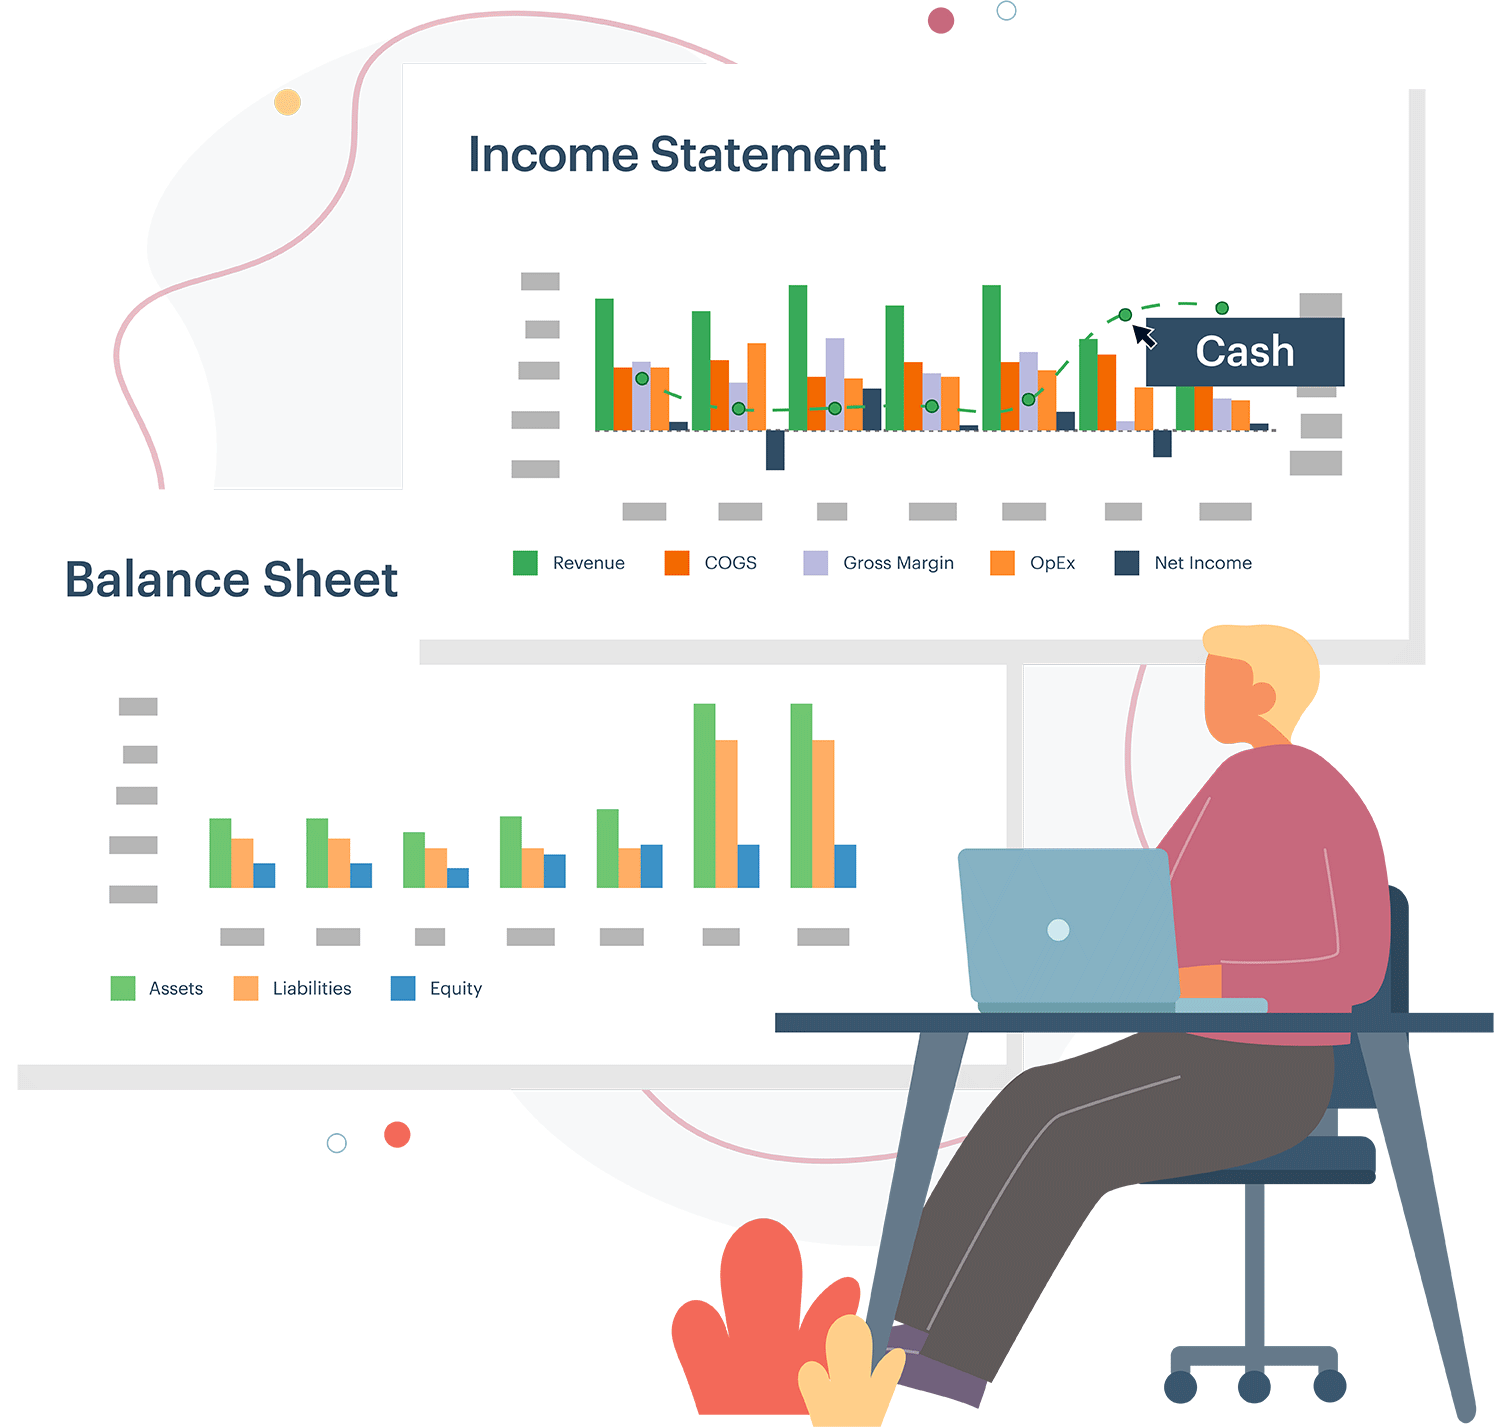 Jirav forecasts not just your income statement, but also your balance sheet and statement of cash flows.